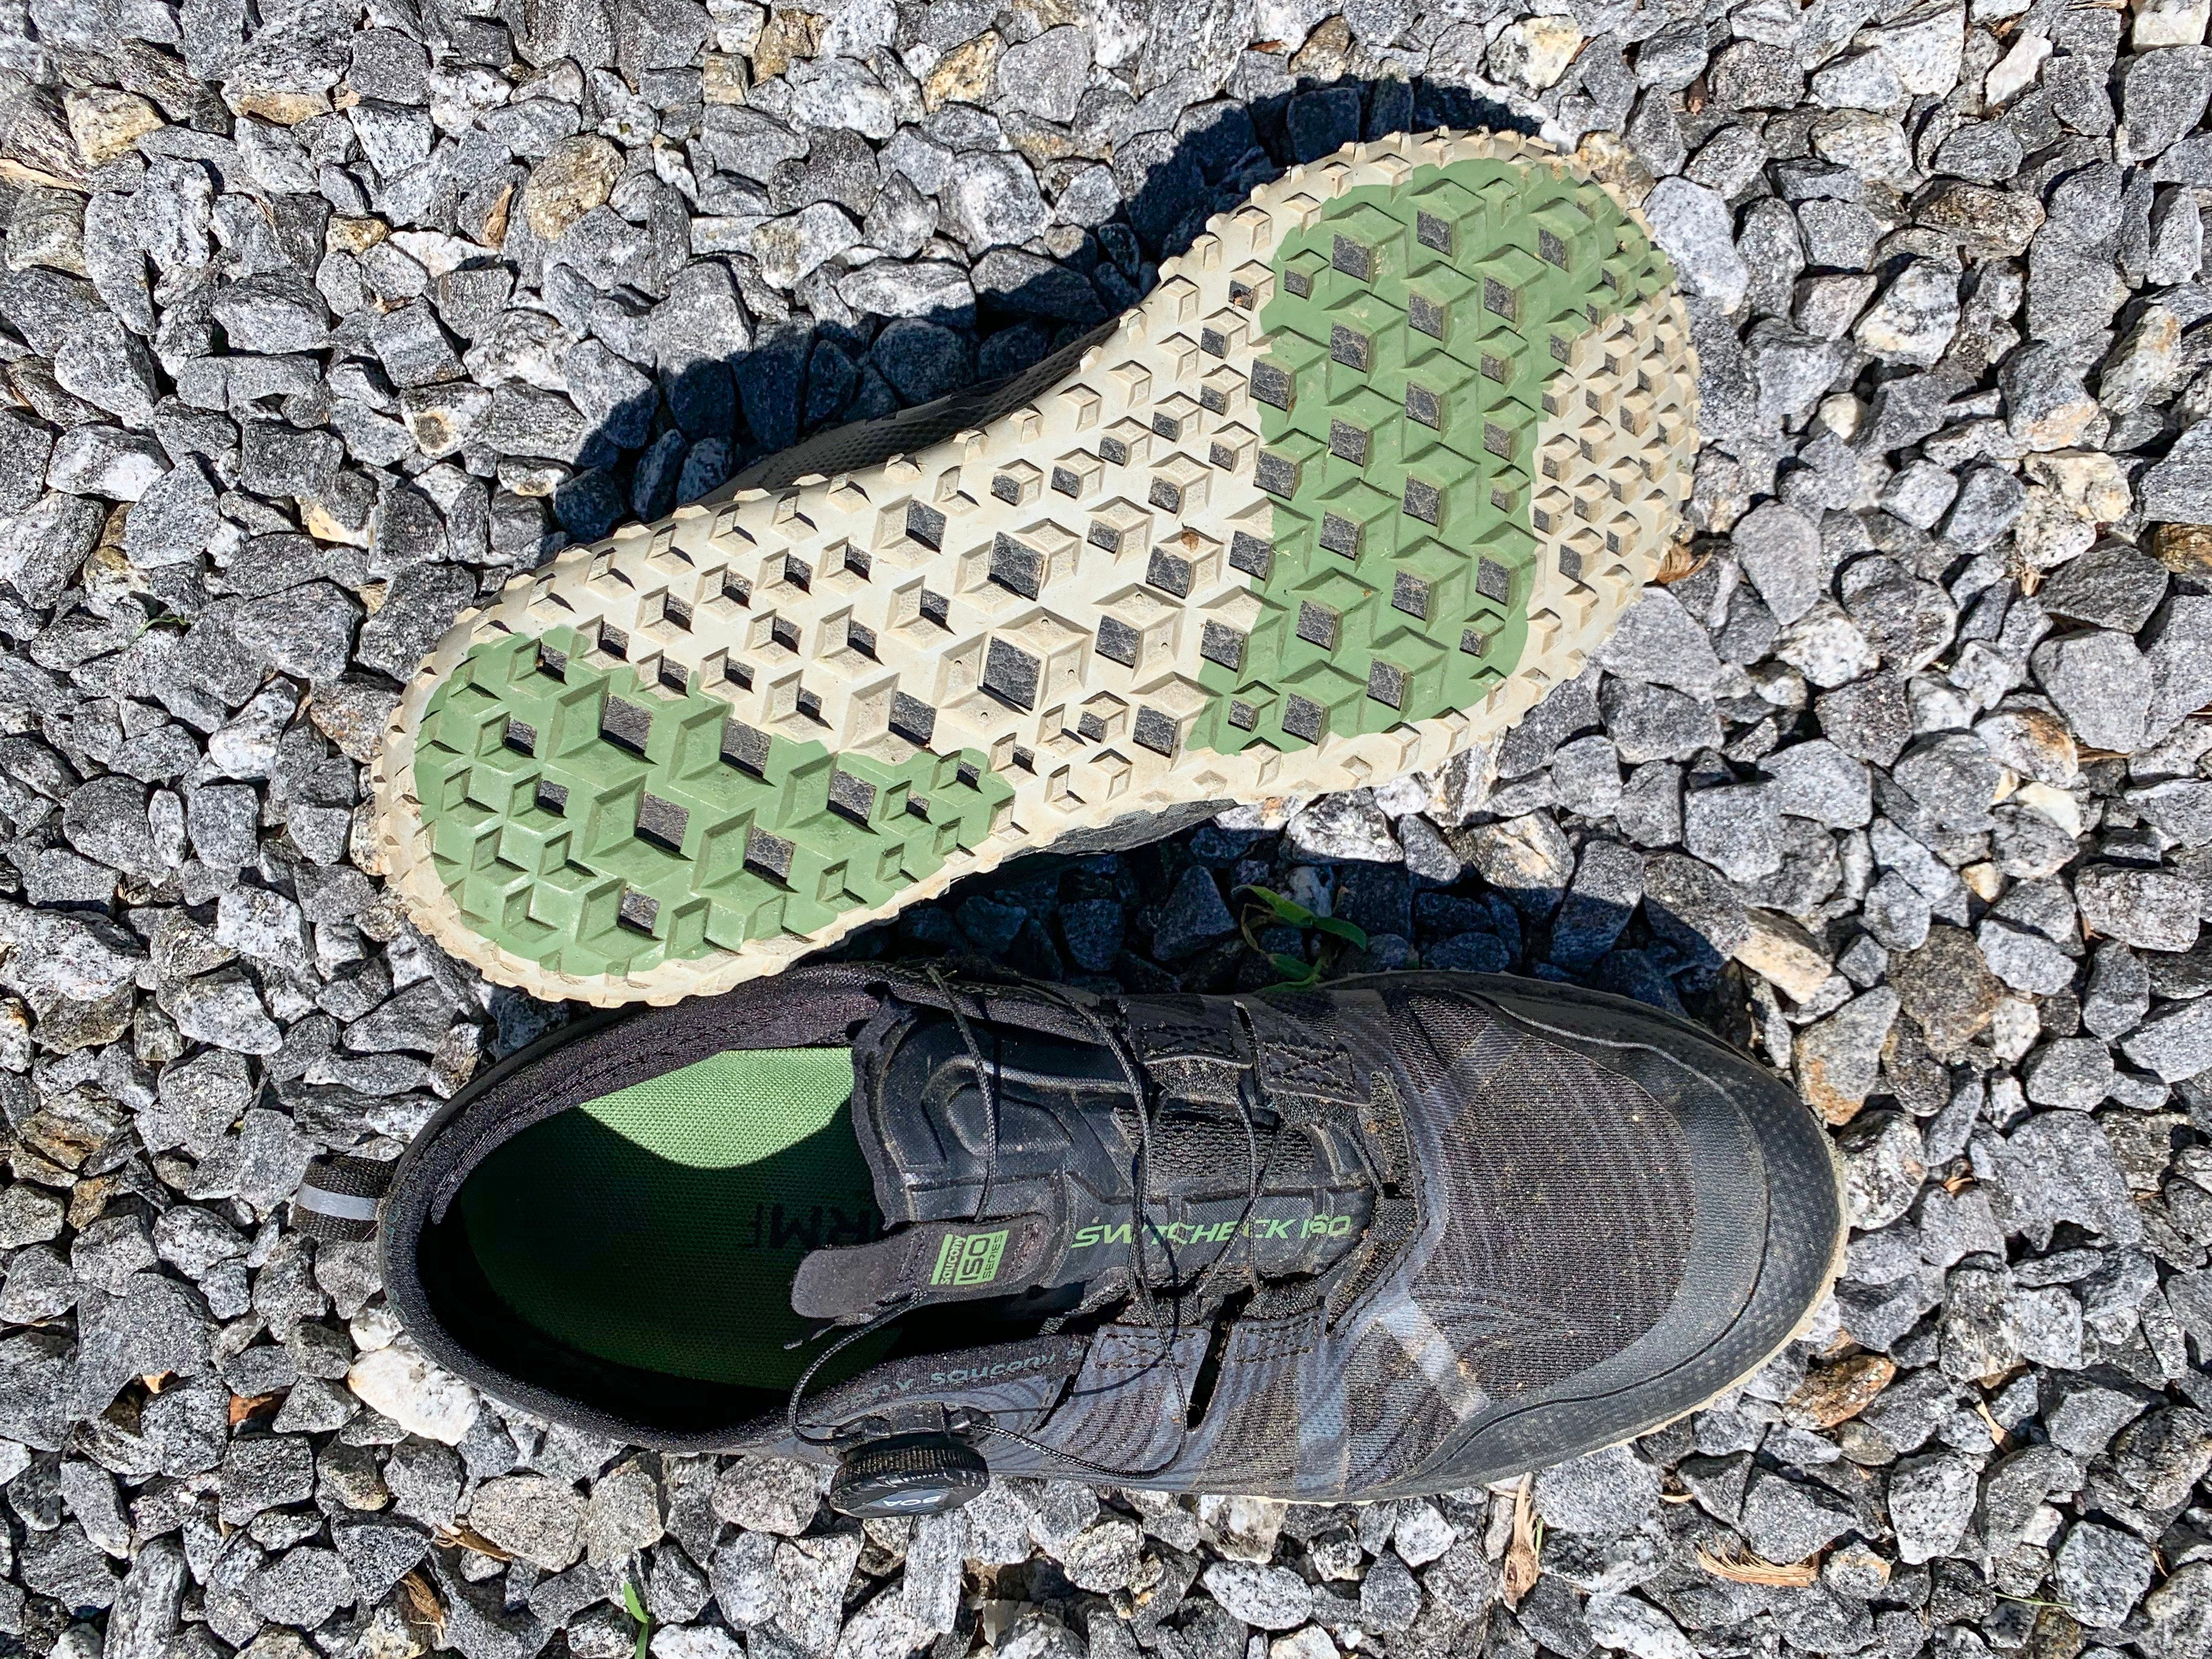 Saucony Switchback ISO trail shoe PWRTRAC outsole